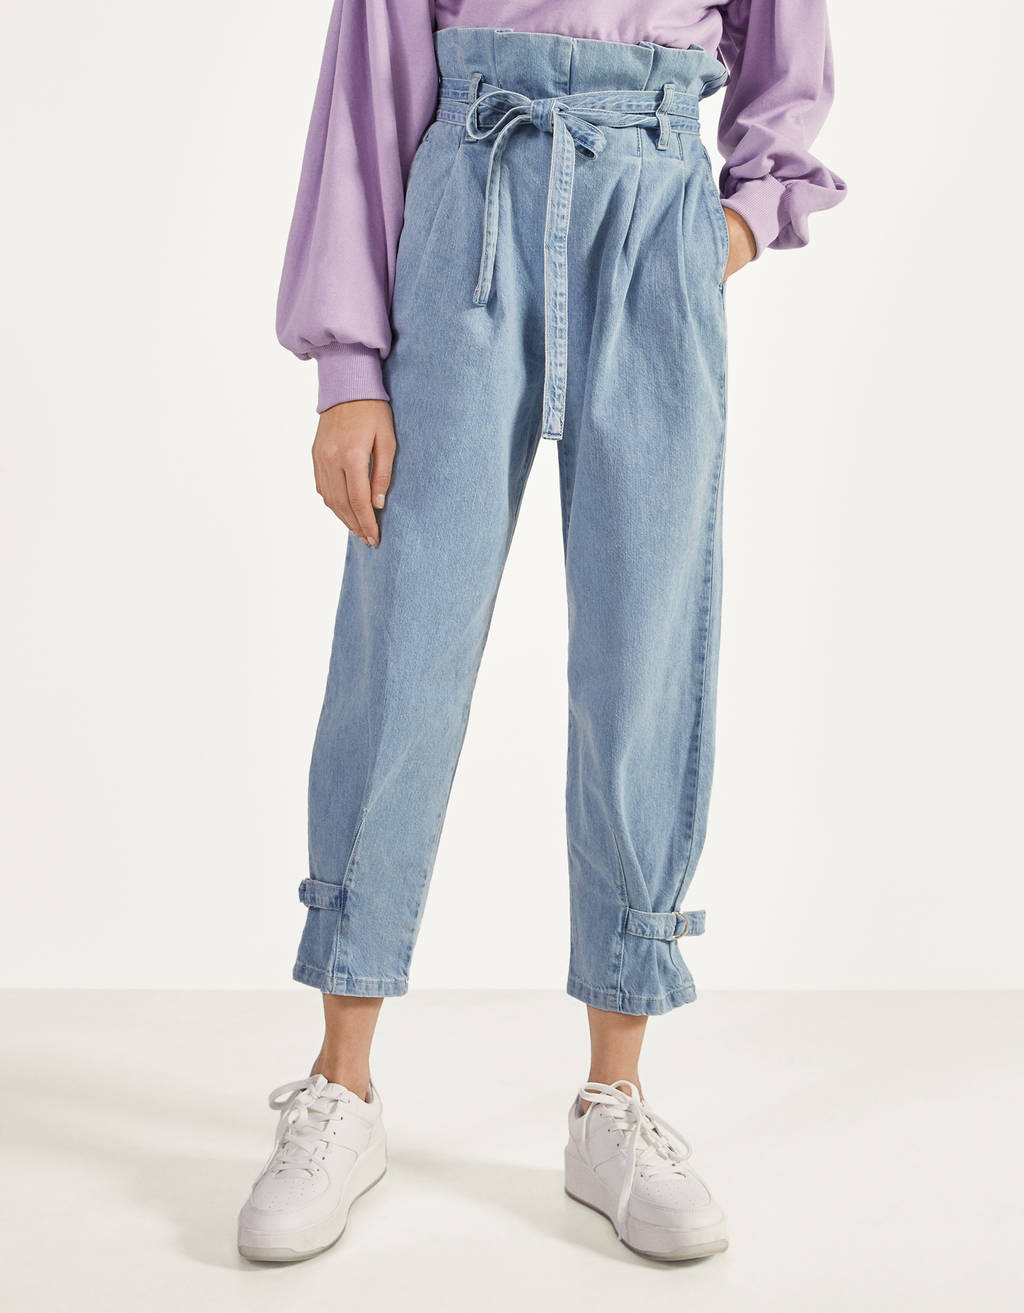 Paperbag jeans with bow